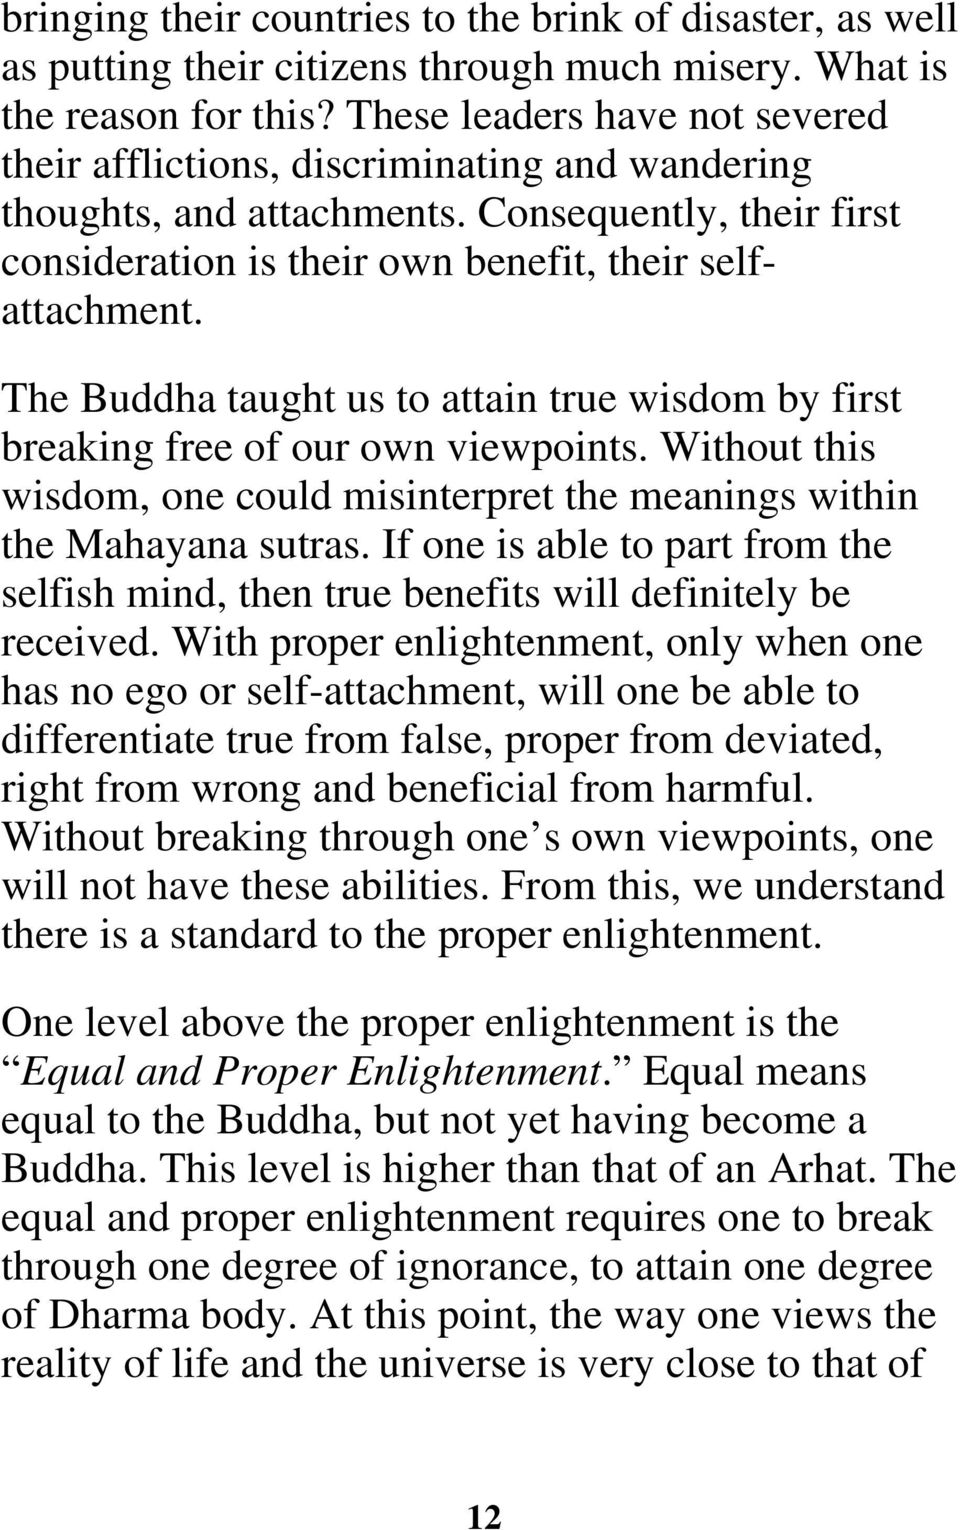 The Buddha taught us to attain true wisdom by first breaking free of our own viewpoints. Without this wisdom, one could misinterpret the meanings within the Mahayana sutras.